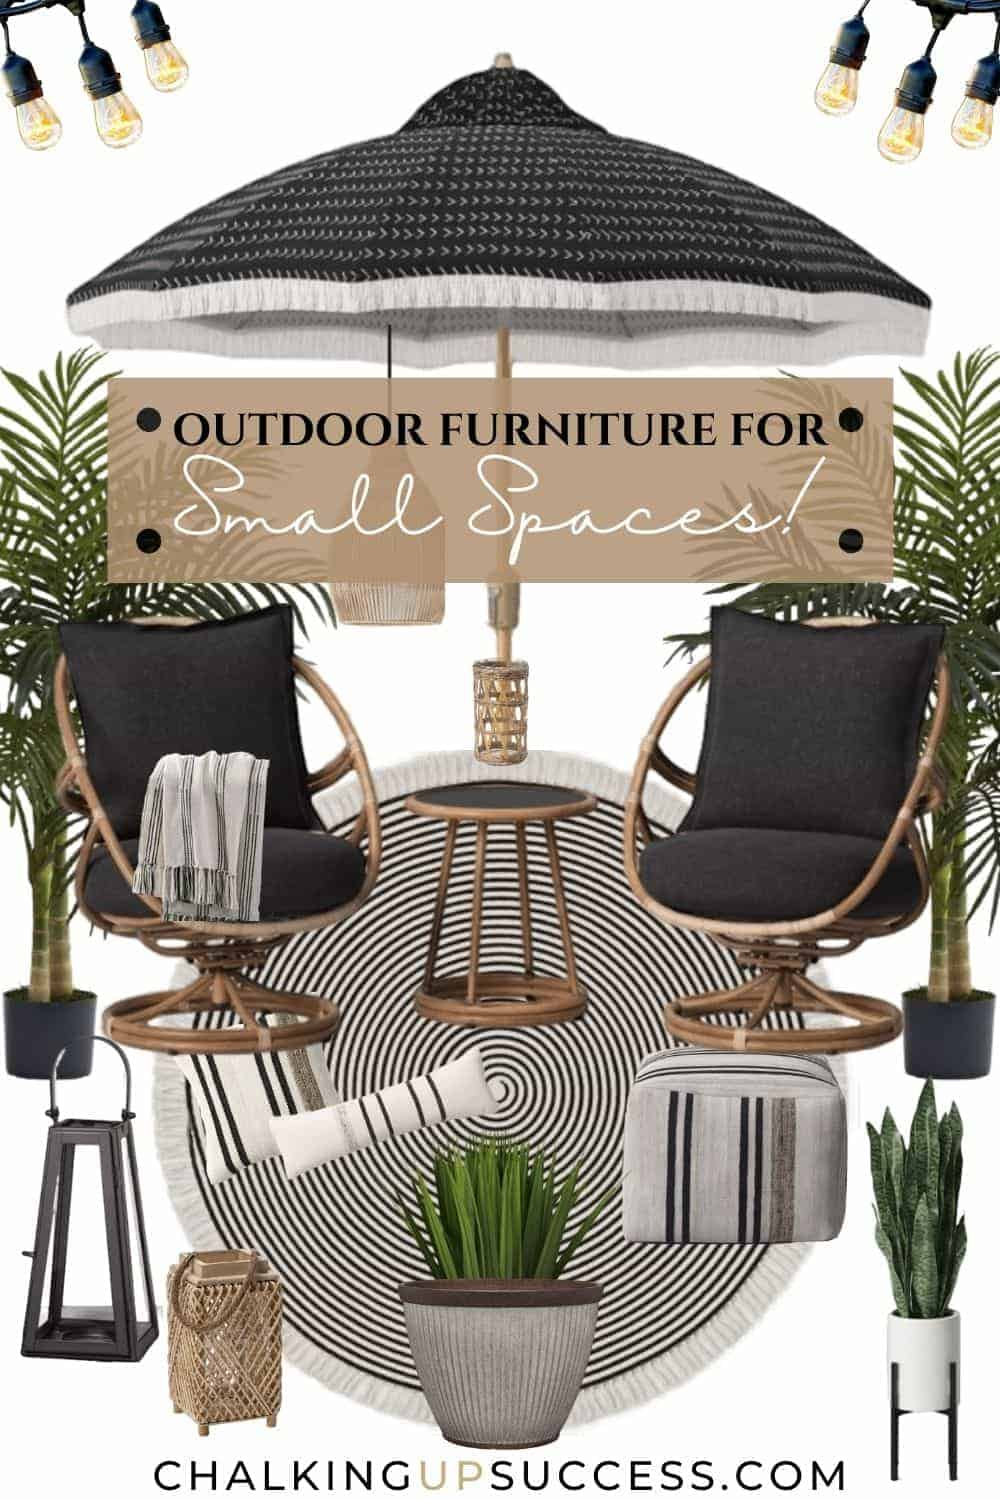 This outdoor furniture for small spaces includes a set of two rocking chairs and a side table. The round black and off white rug with concentric circles complements the boho style.